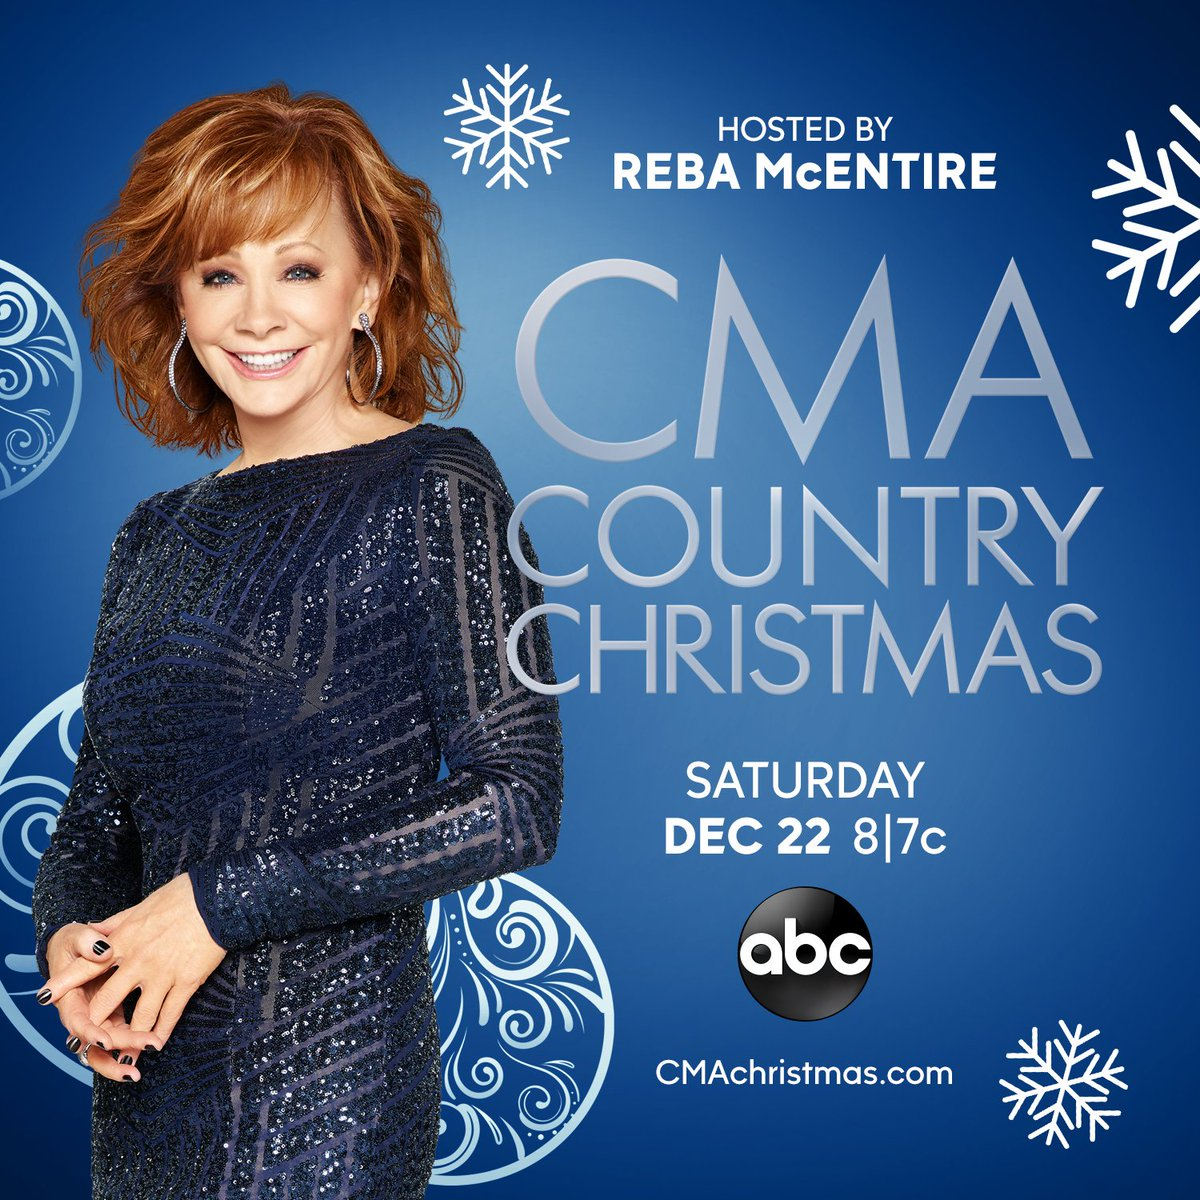 RT @reba: Missed all the fun of #CMAchristmas? Don't worry! Catch the replay this Saturday at 8/7c on @ABCNetwork! https://t.co/Aq2DYxIpNJ